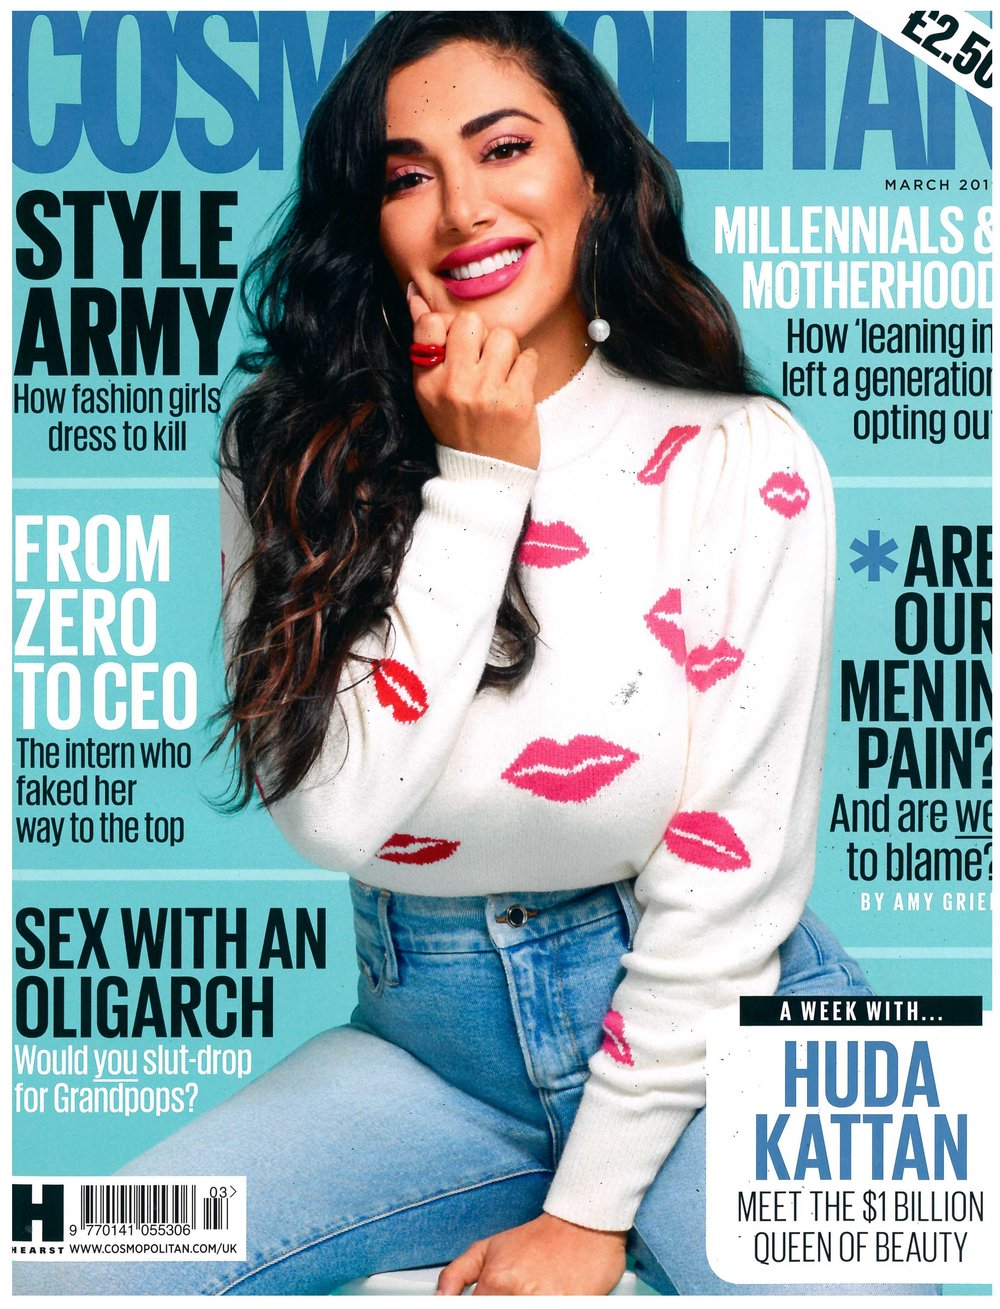 March Issue 19 - Cosmo - Tiger Cica_20190131_175418.jpg